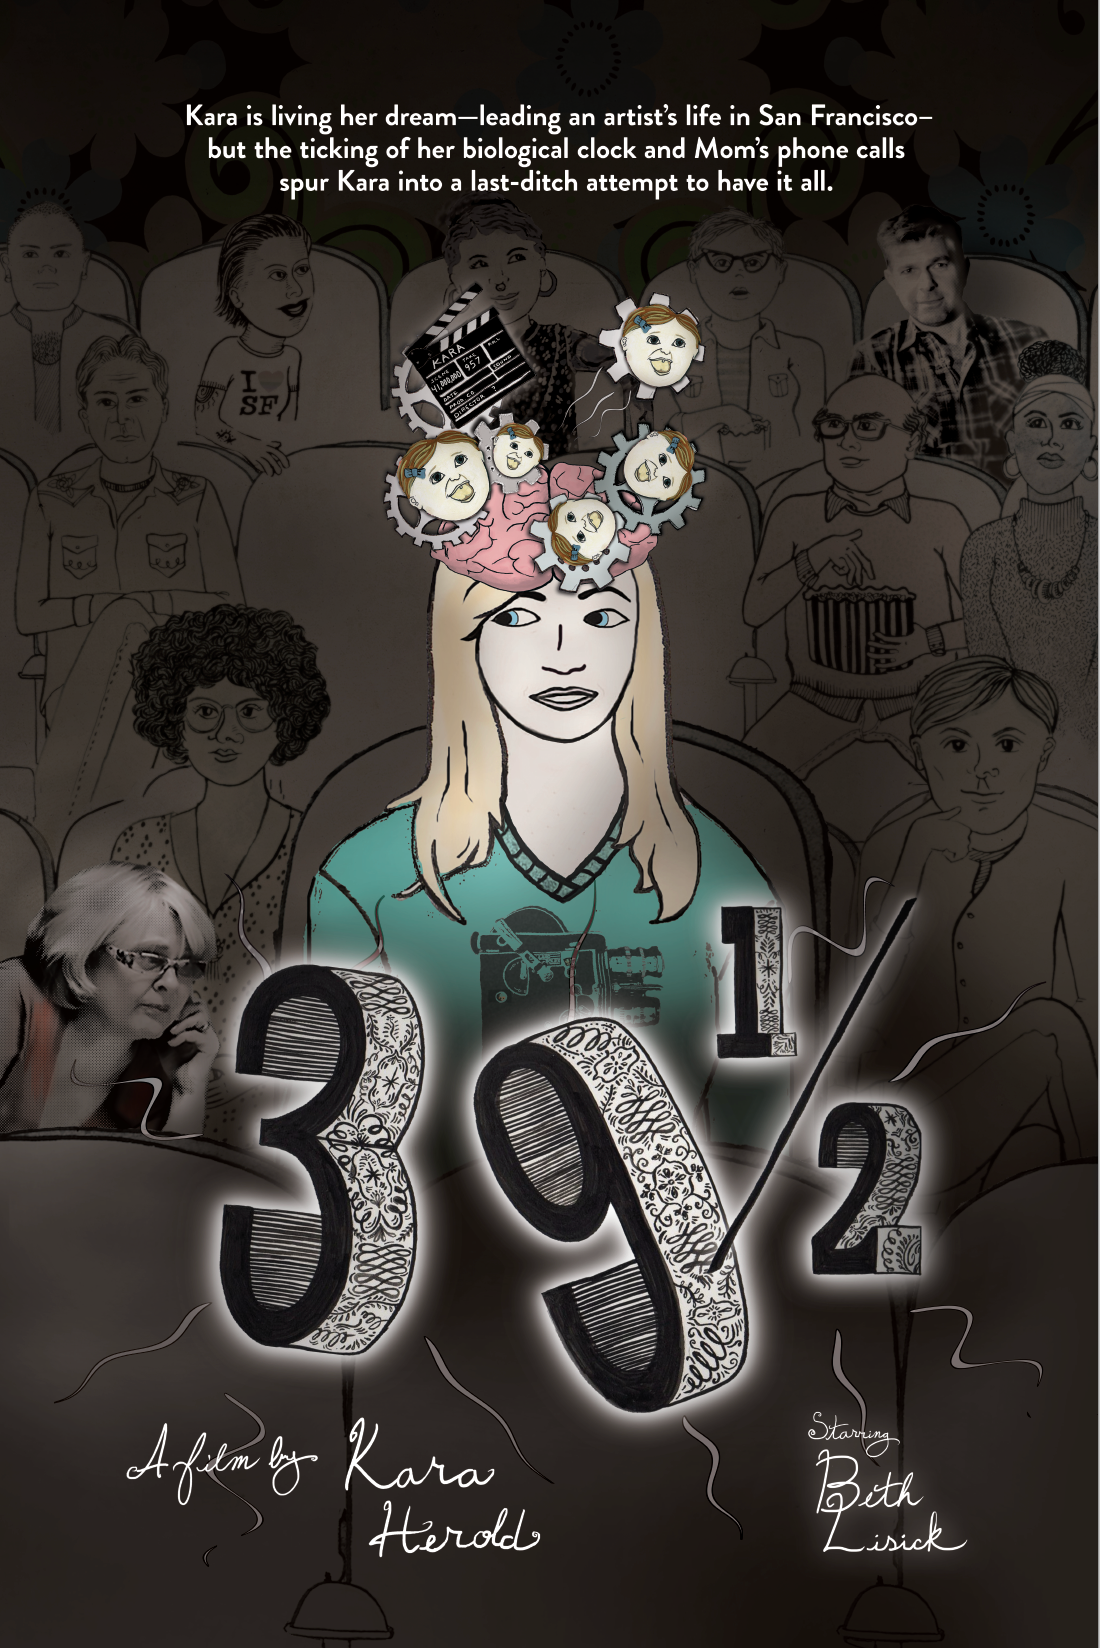 39 and a Half poster I created for theater display